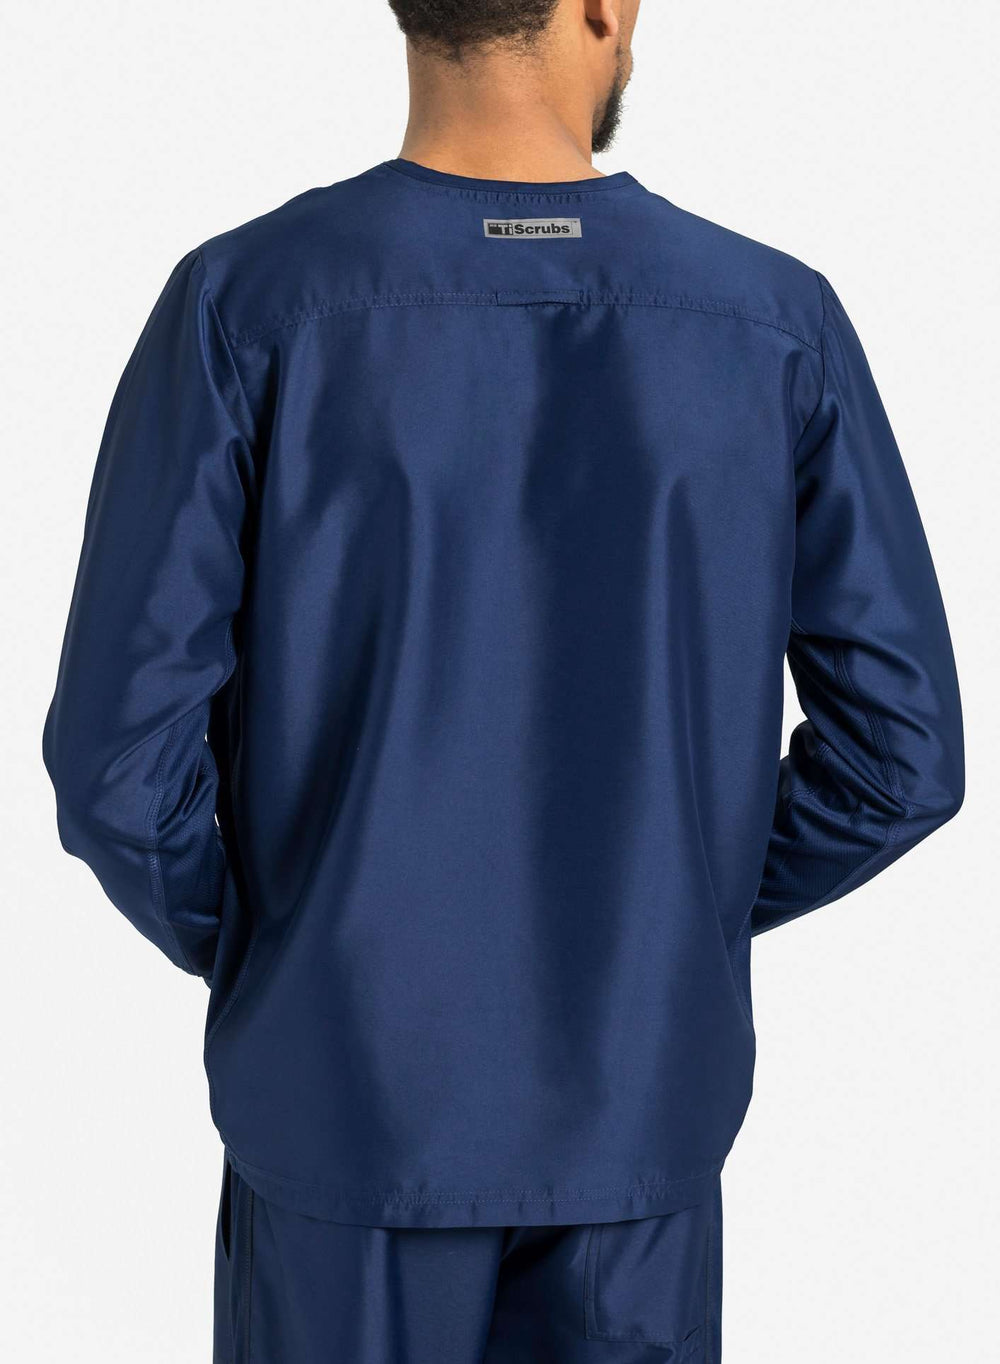 mens Elements long sleeve one pocket scrub top navy blue